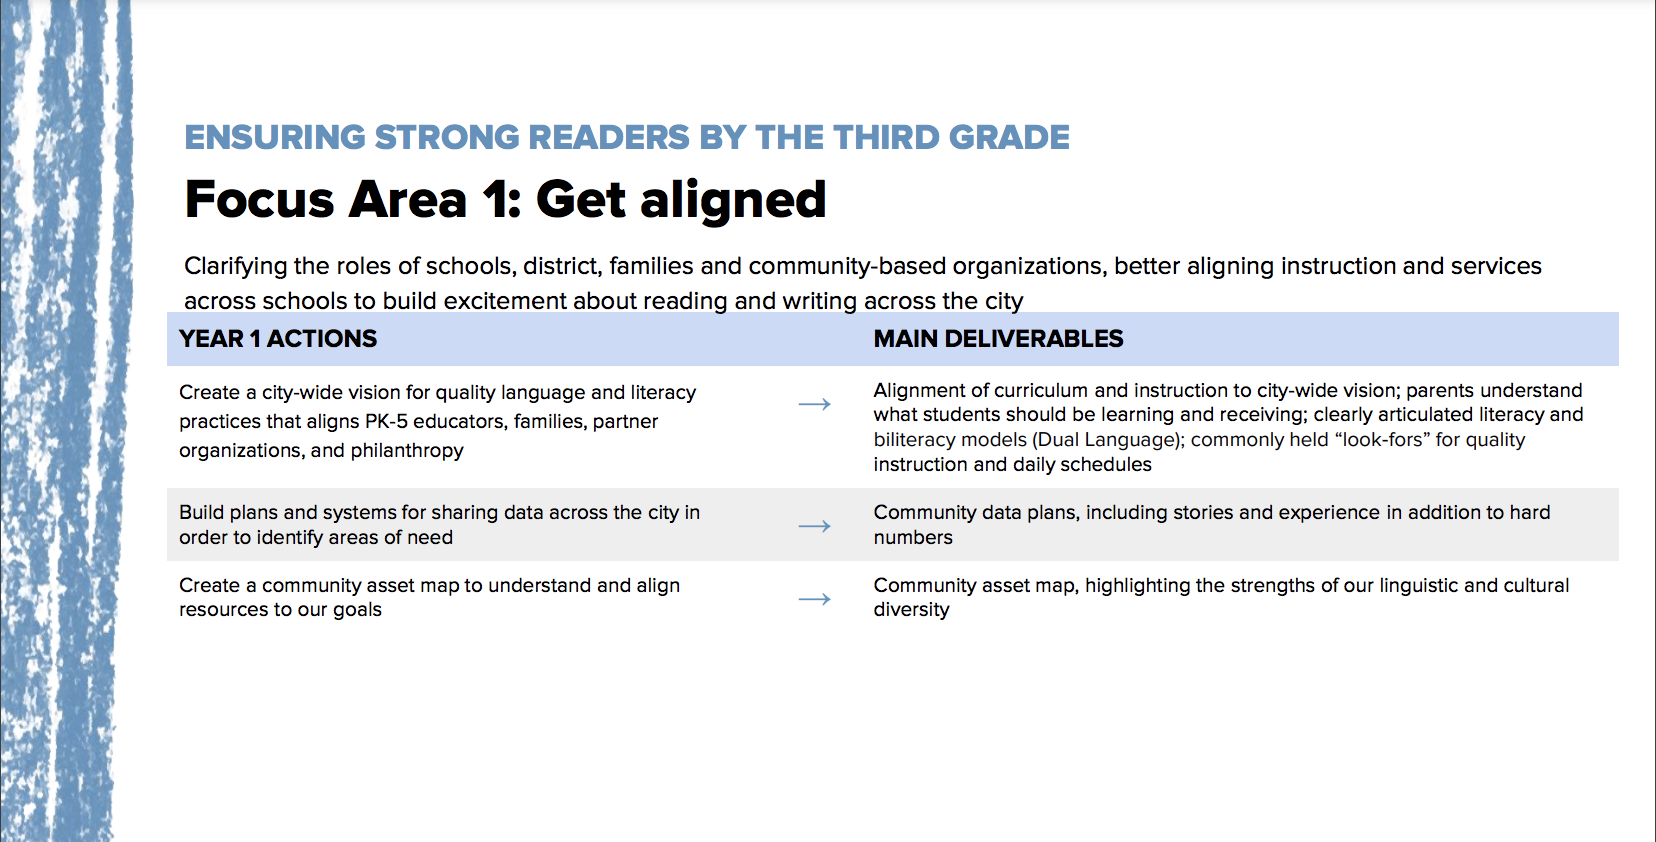 """OUSD 2021-24 Strategic Plan Initiative #1 Focus Area #1- """"Get Aligned"""" Year 1 Actions and Main Deliverables; all content included in table below"""